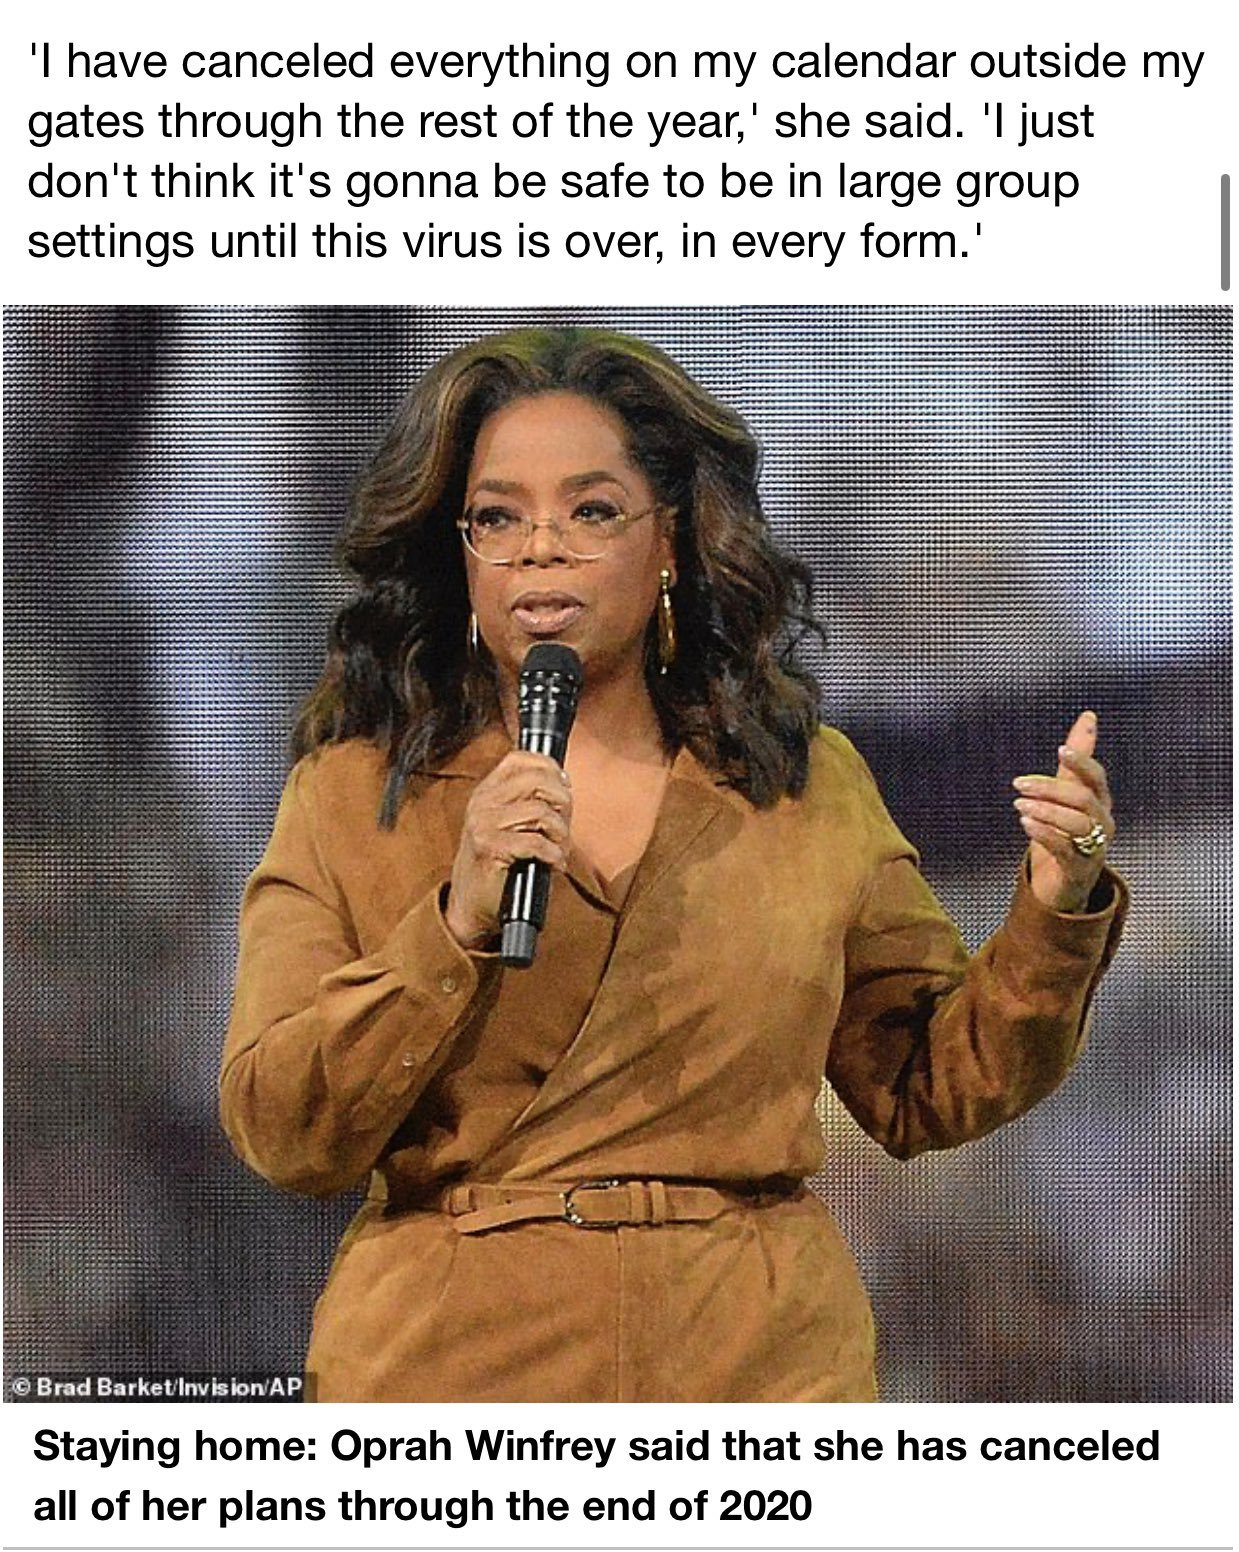 Speaking of Oprah, she looks like she's going underground, no pun intended